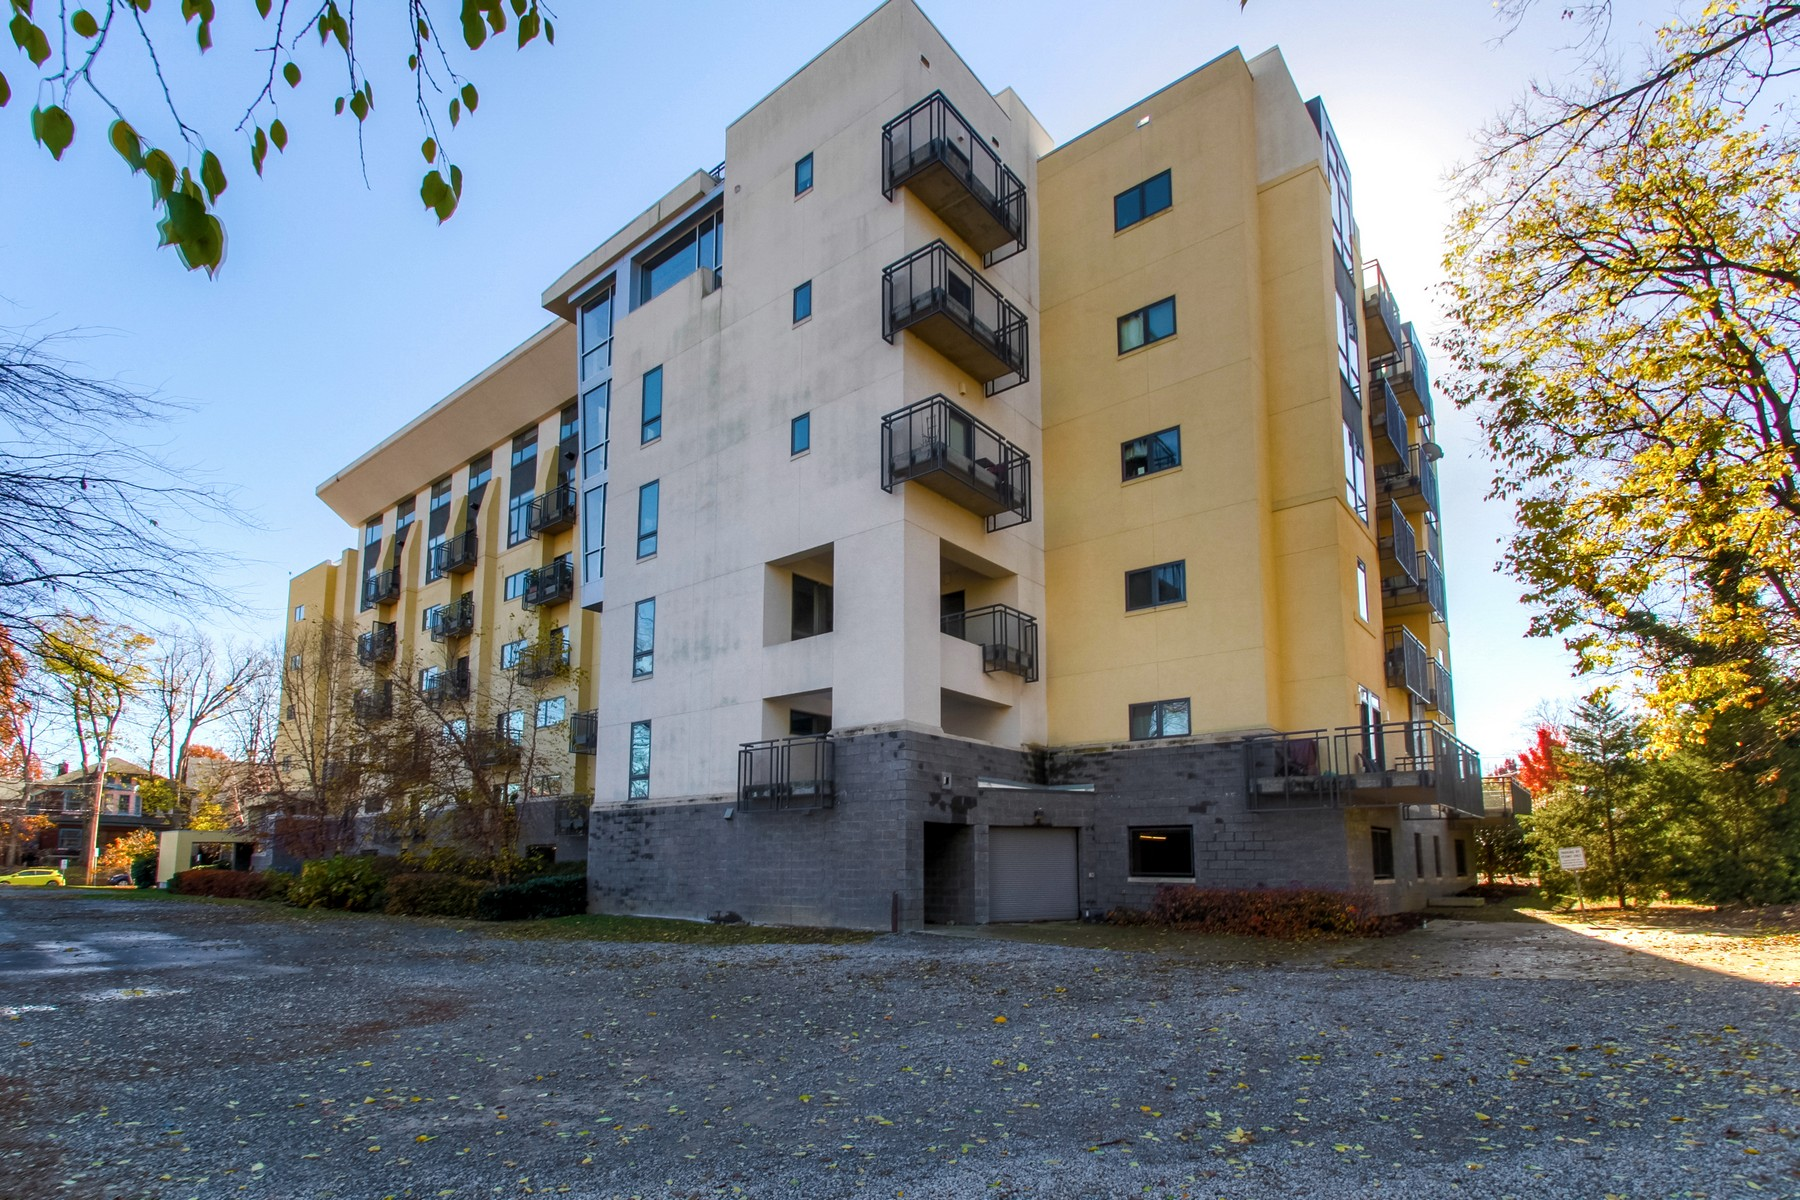 Condominium for Sale at Spacious Condo Conveniently Located Near Vandy and Midtown Nashville 1101 18th Avenue South, Unit 511 Nashville, Tennessee, 37212 United States